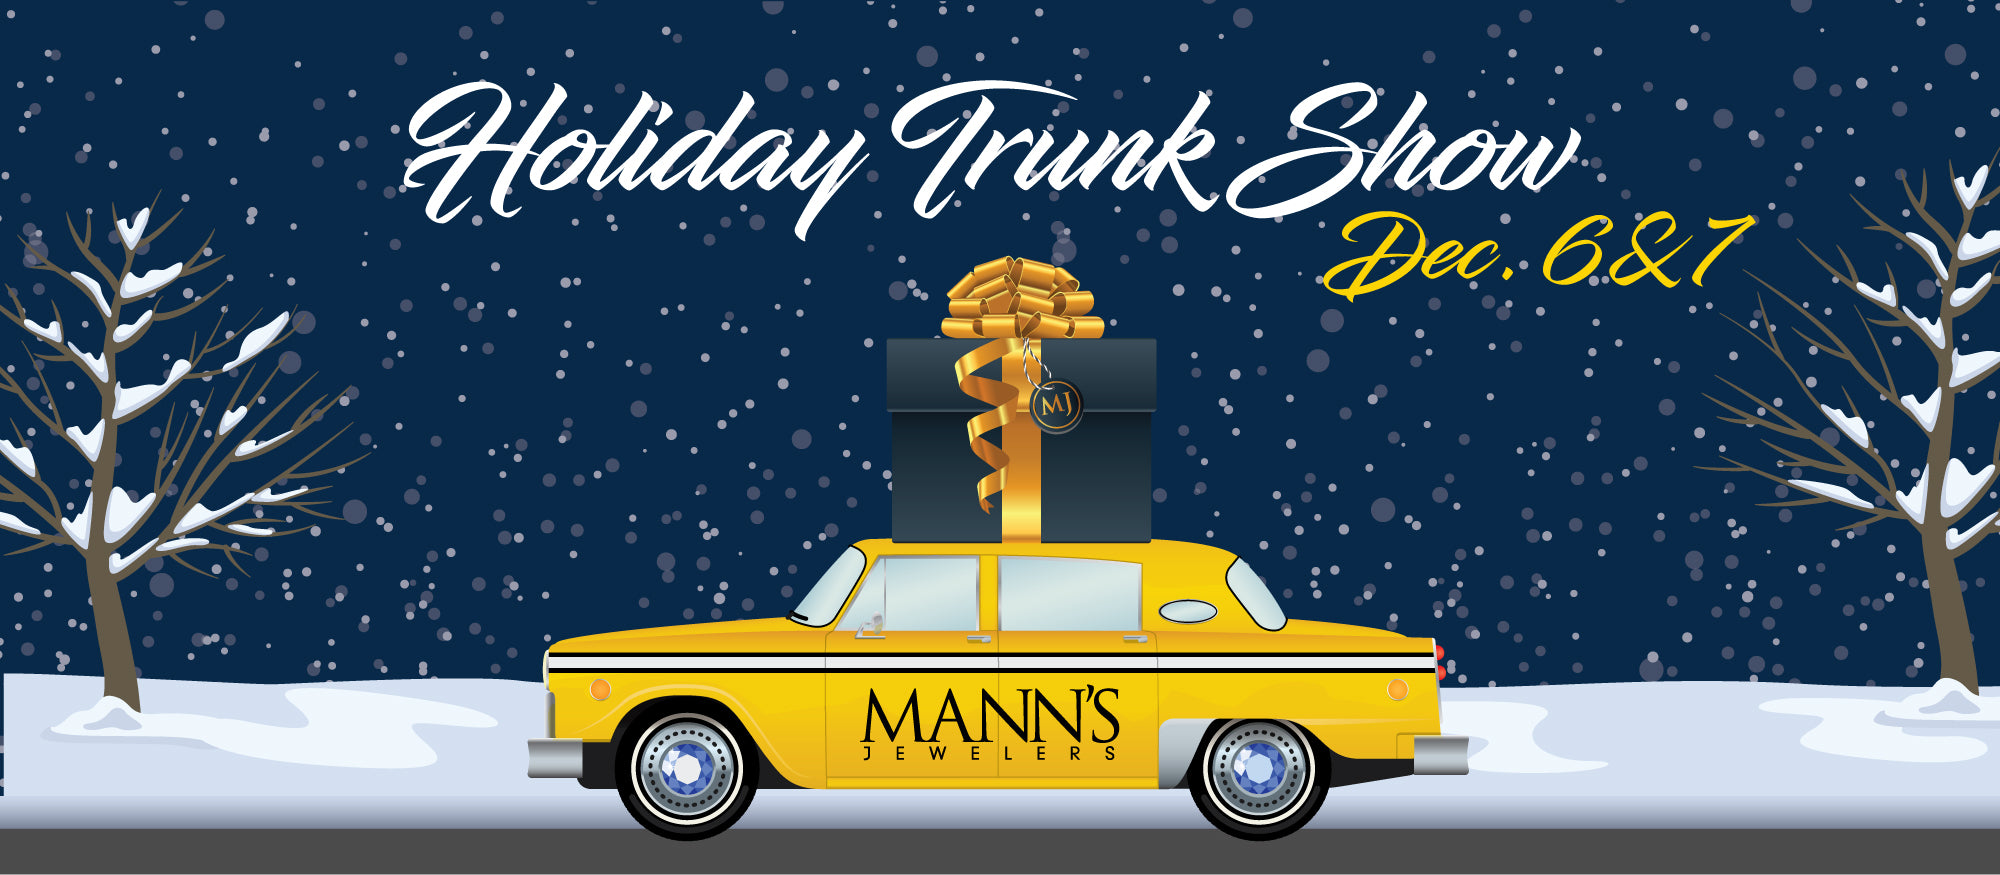 Holiday Trunk Show Event December 6th and 7th